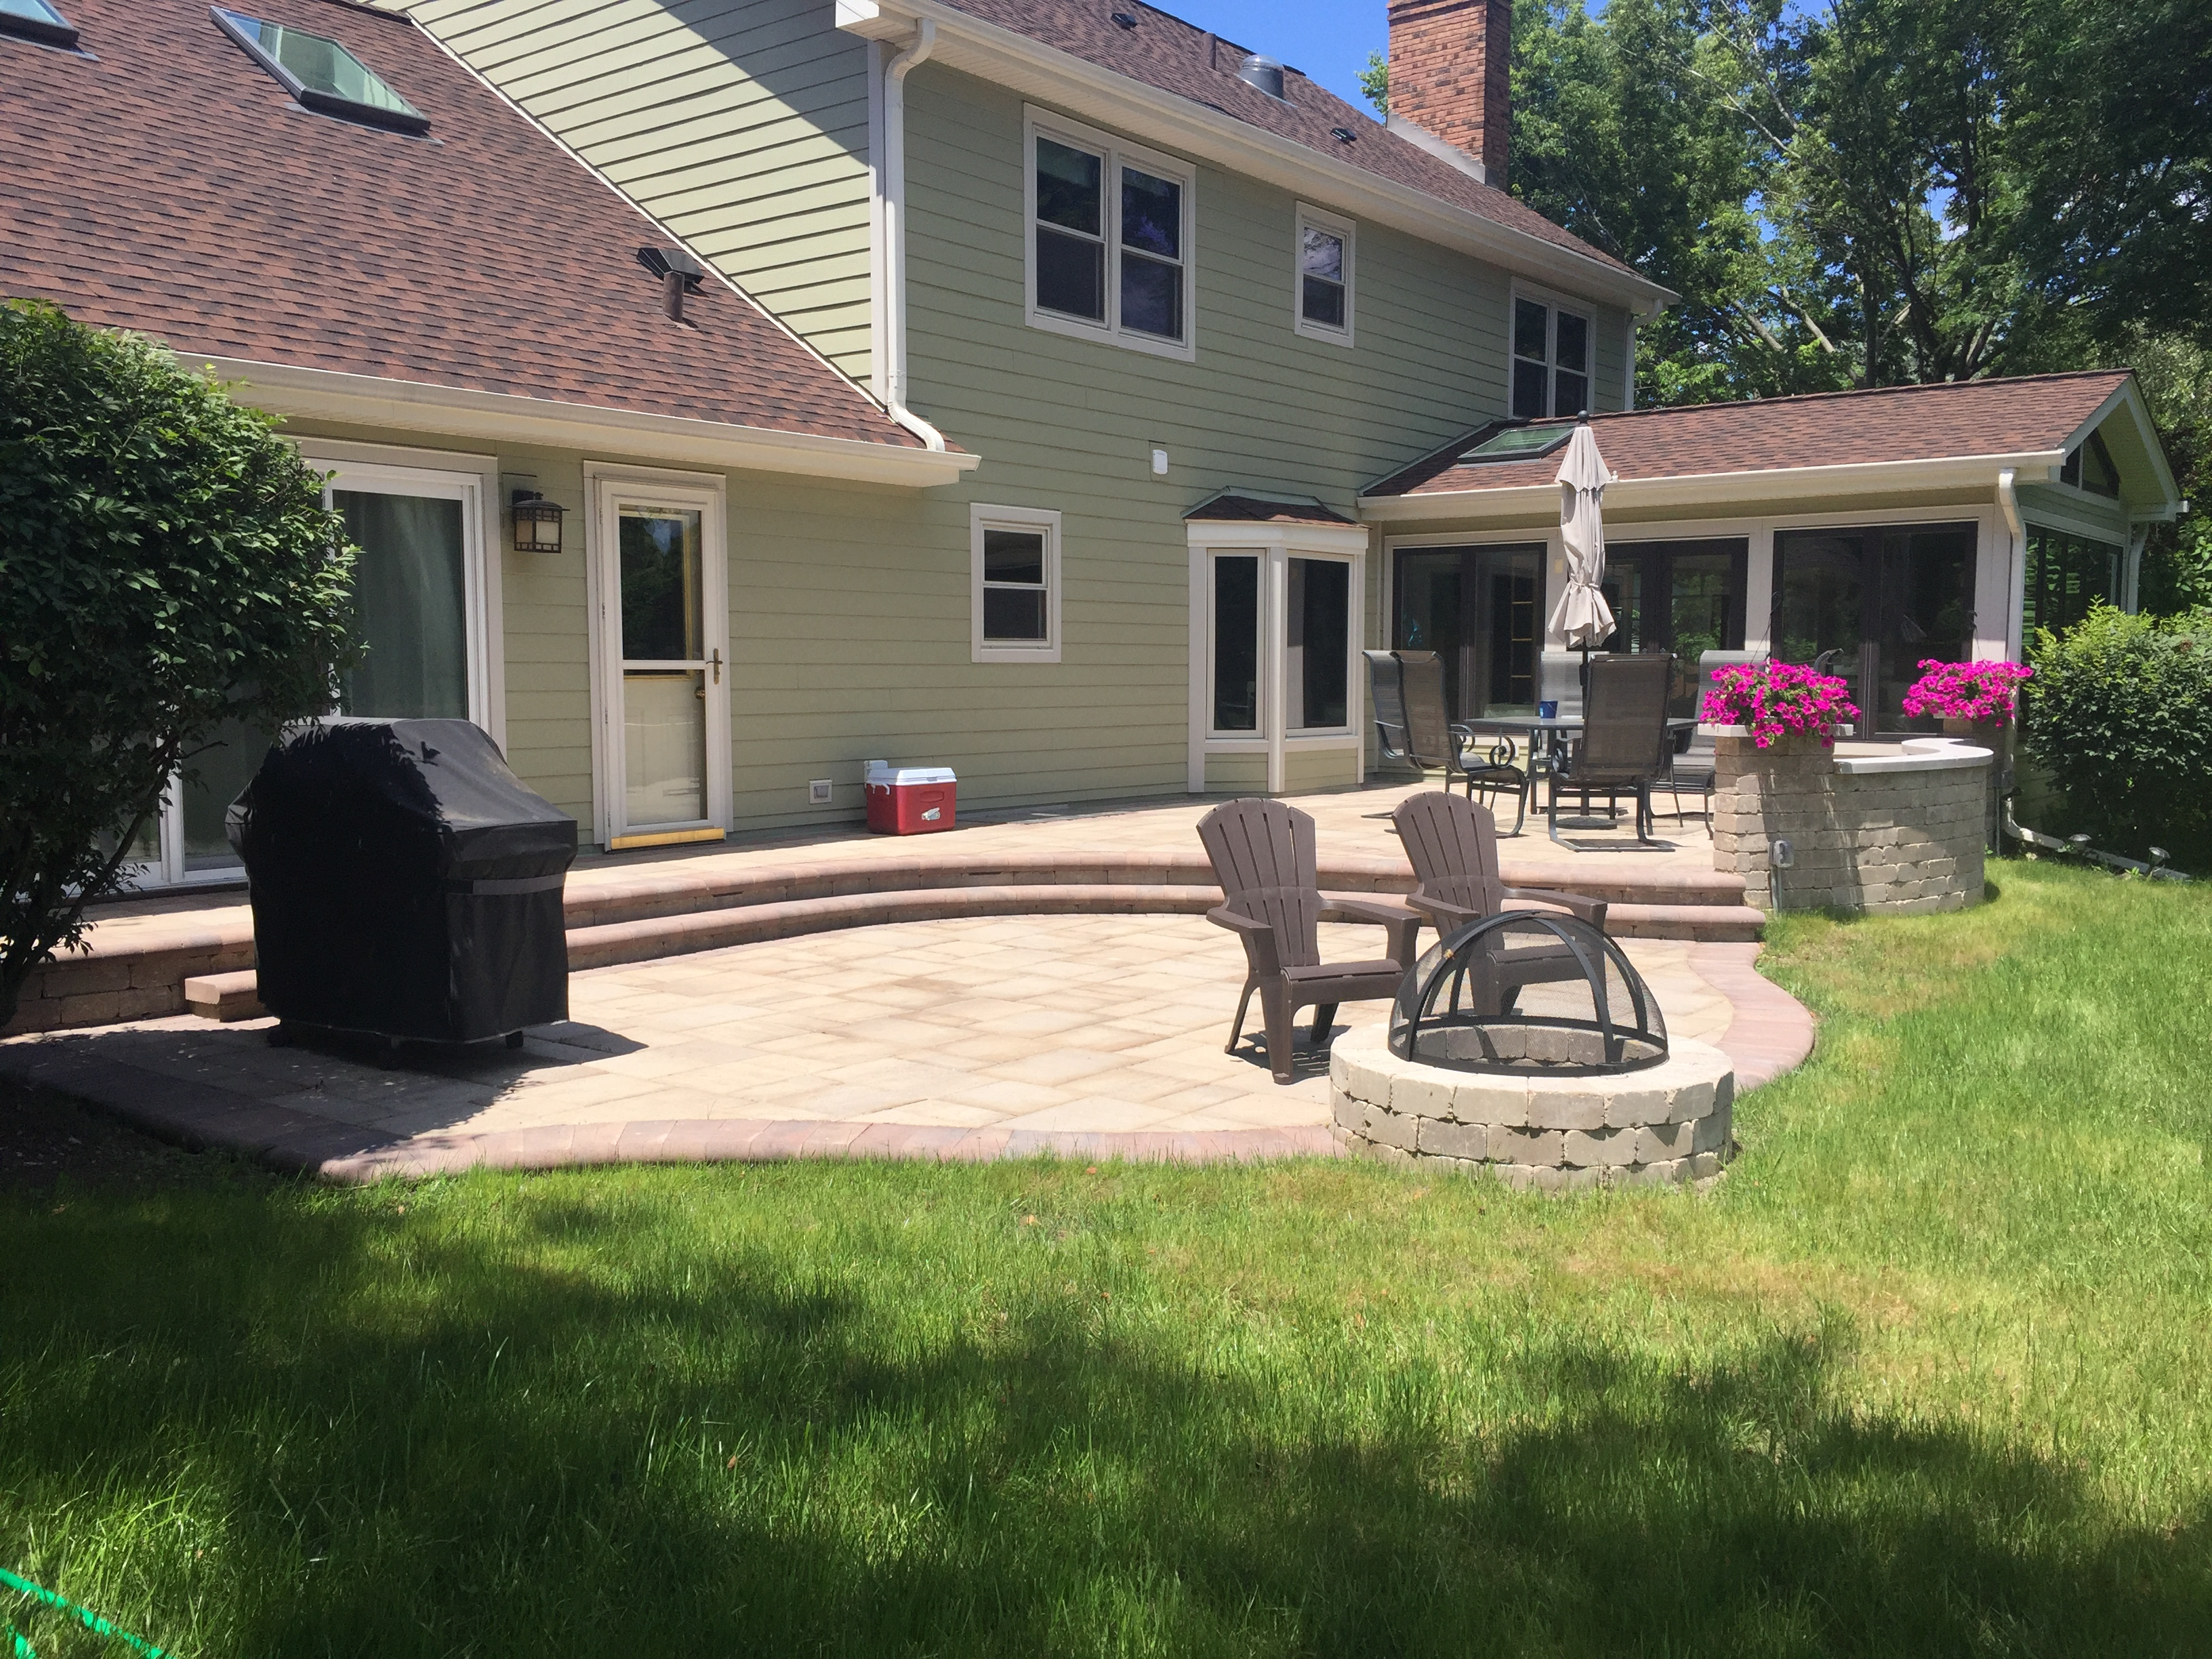 Concrete or Paver Patios for your backyard? Thumbnail